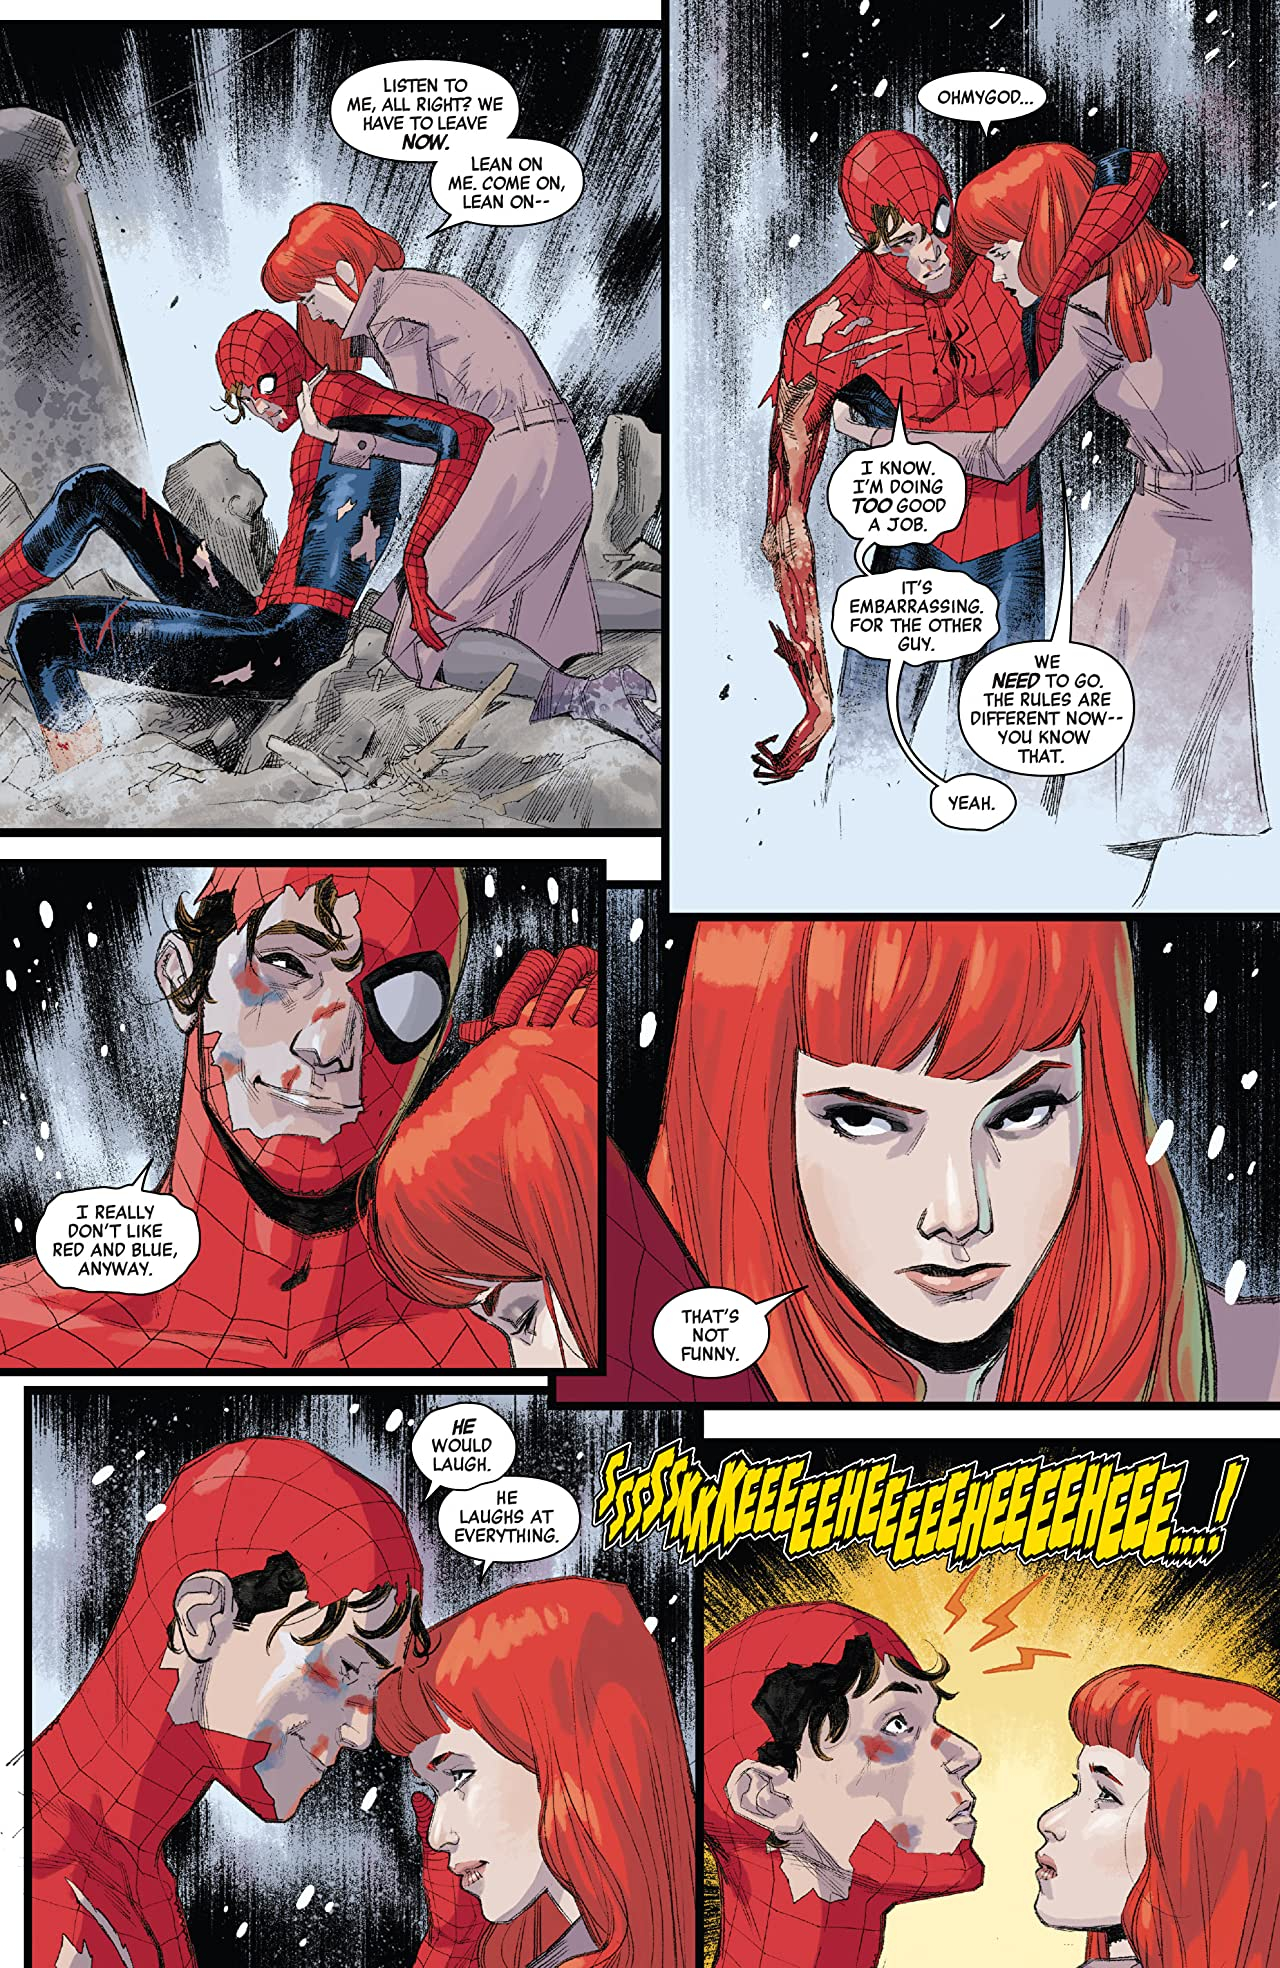 Spider-Man (2019-) #1 (of 5)